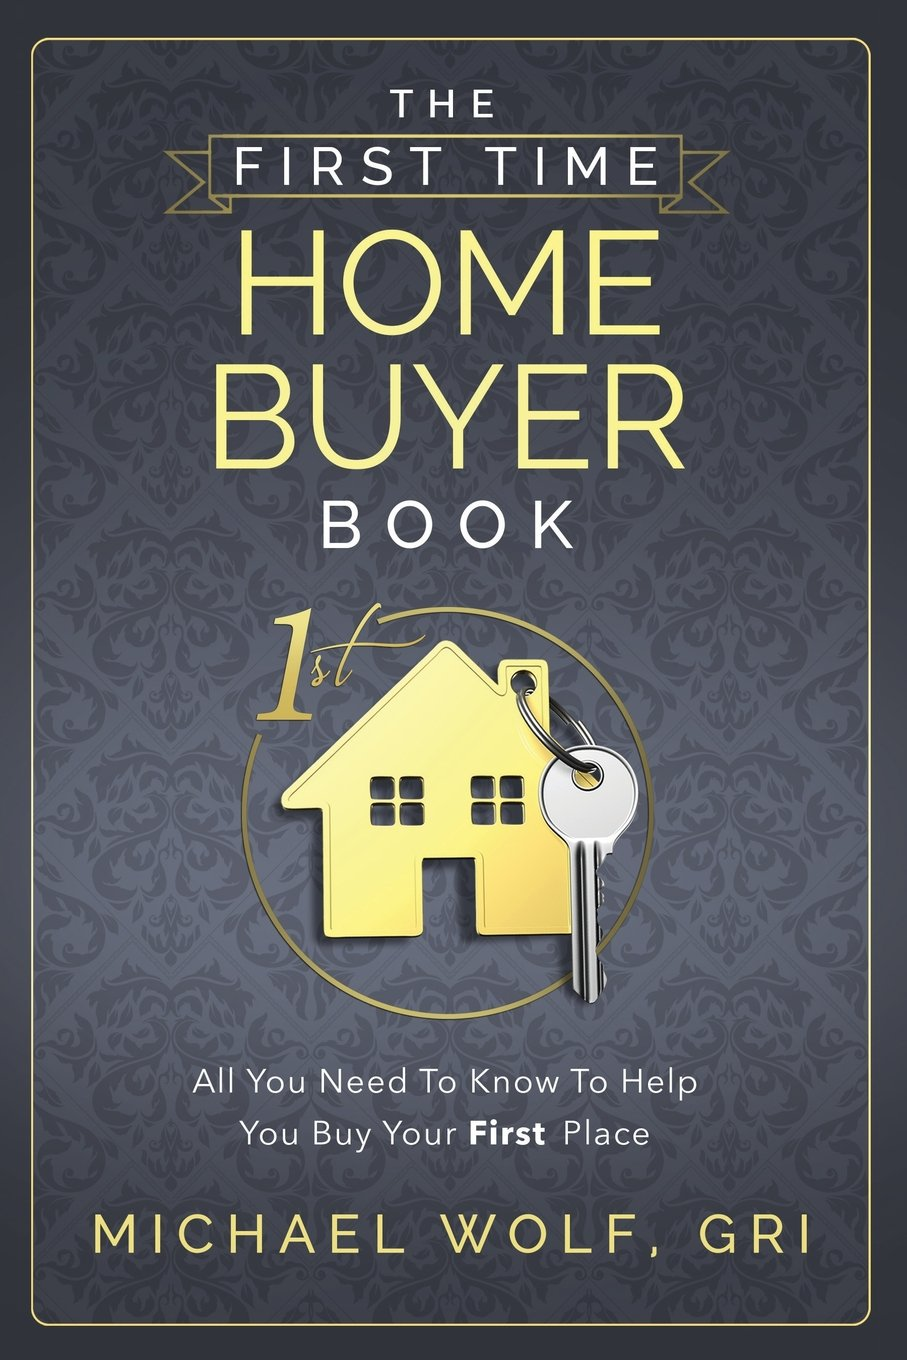 the first time home buyer book michael wolf 9781628650952 the first time home buyer book michael wolf 9781628650952 amazon com books